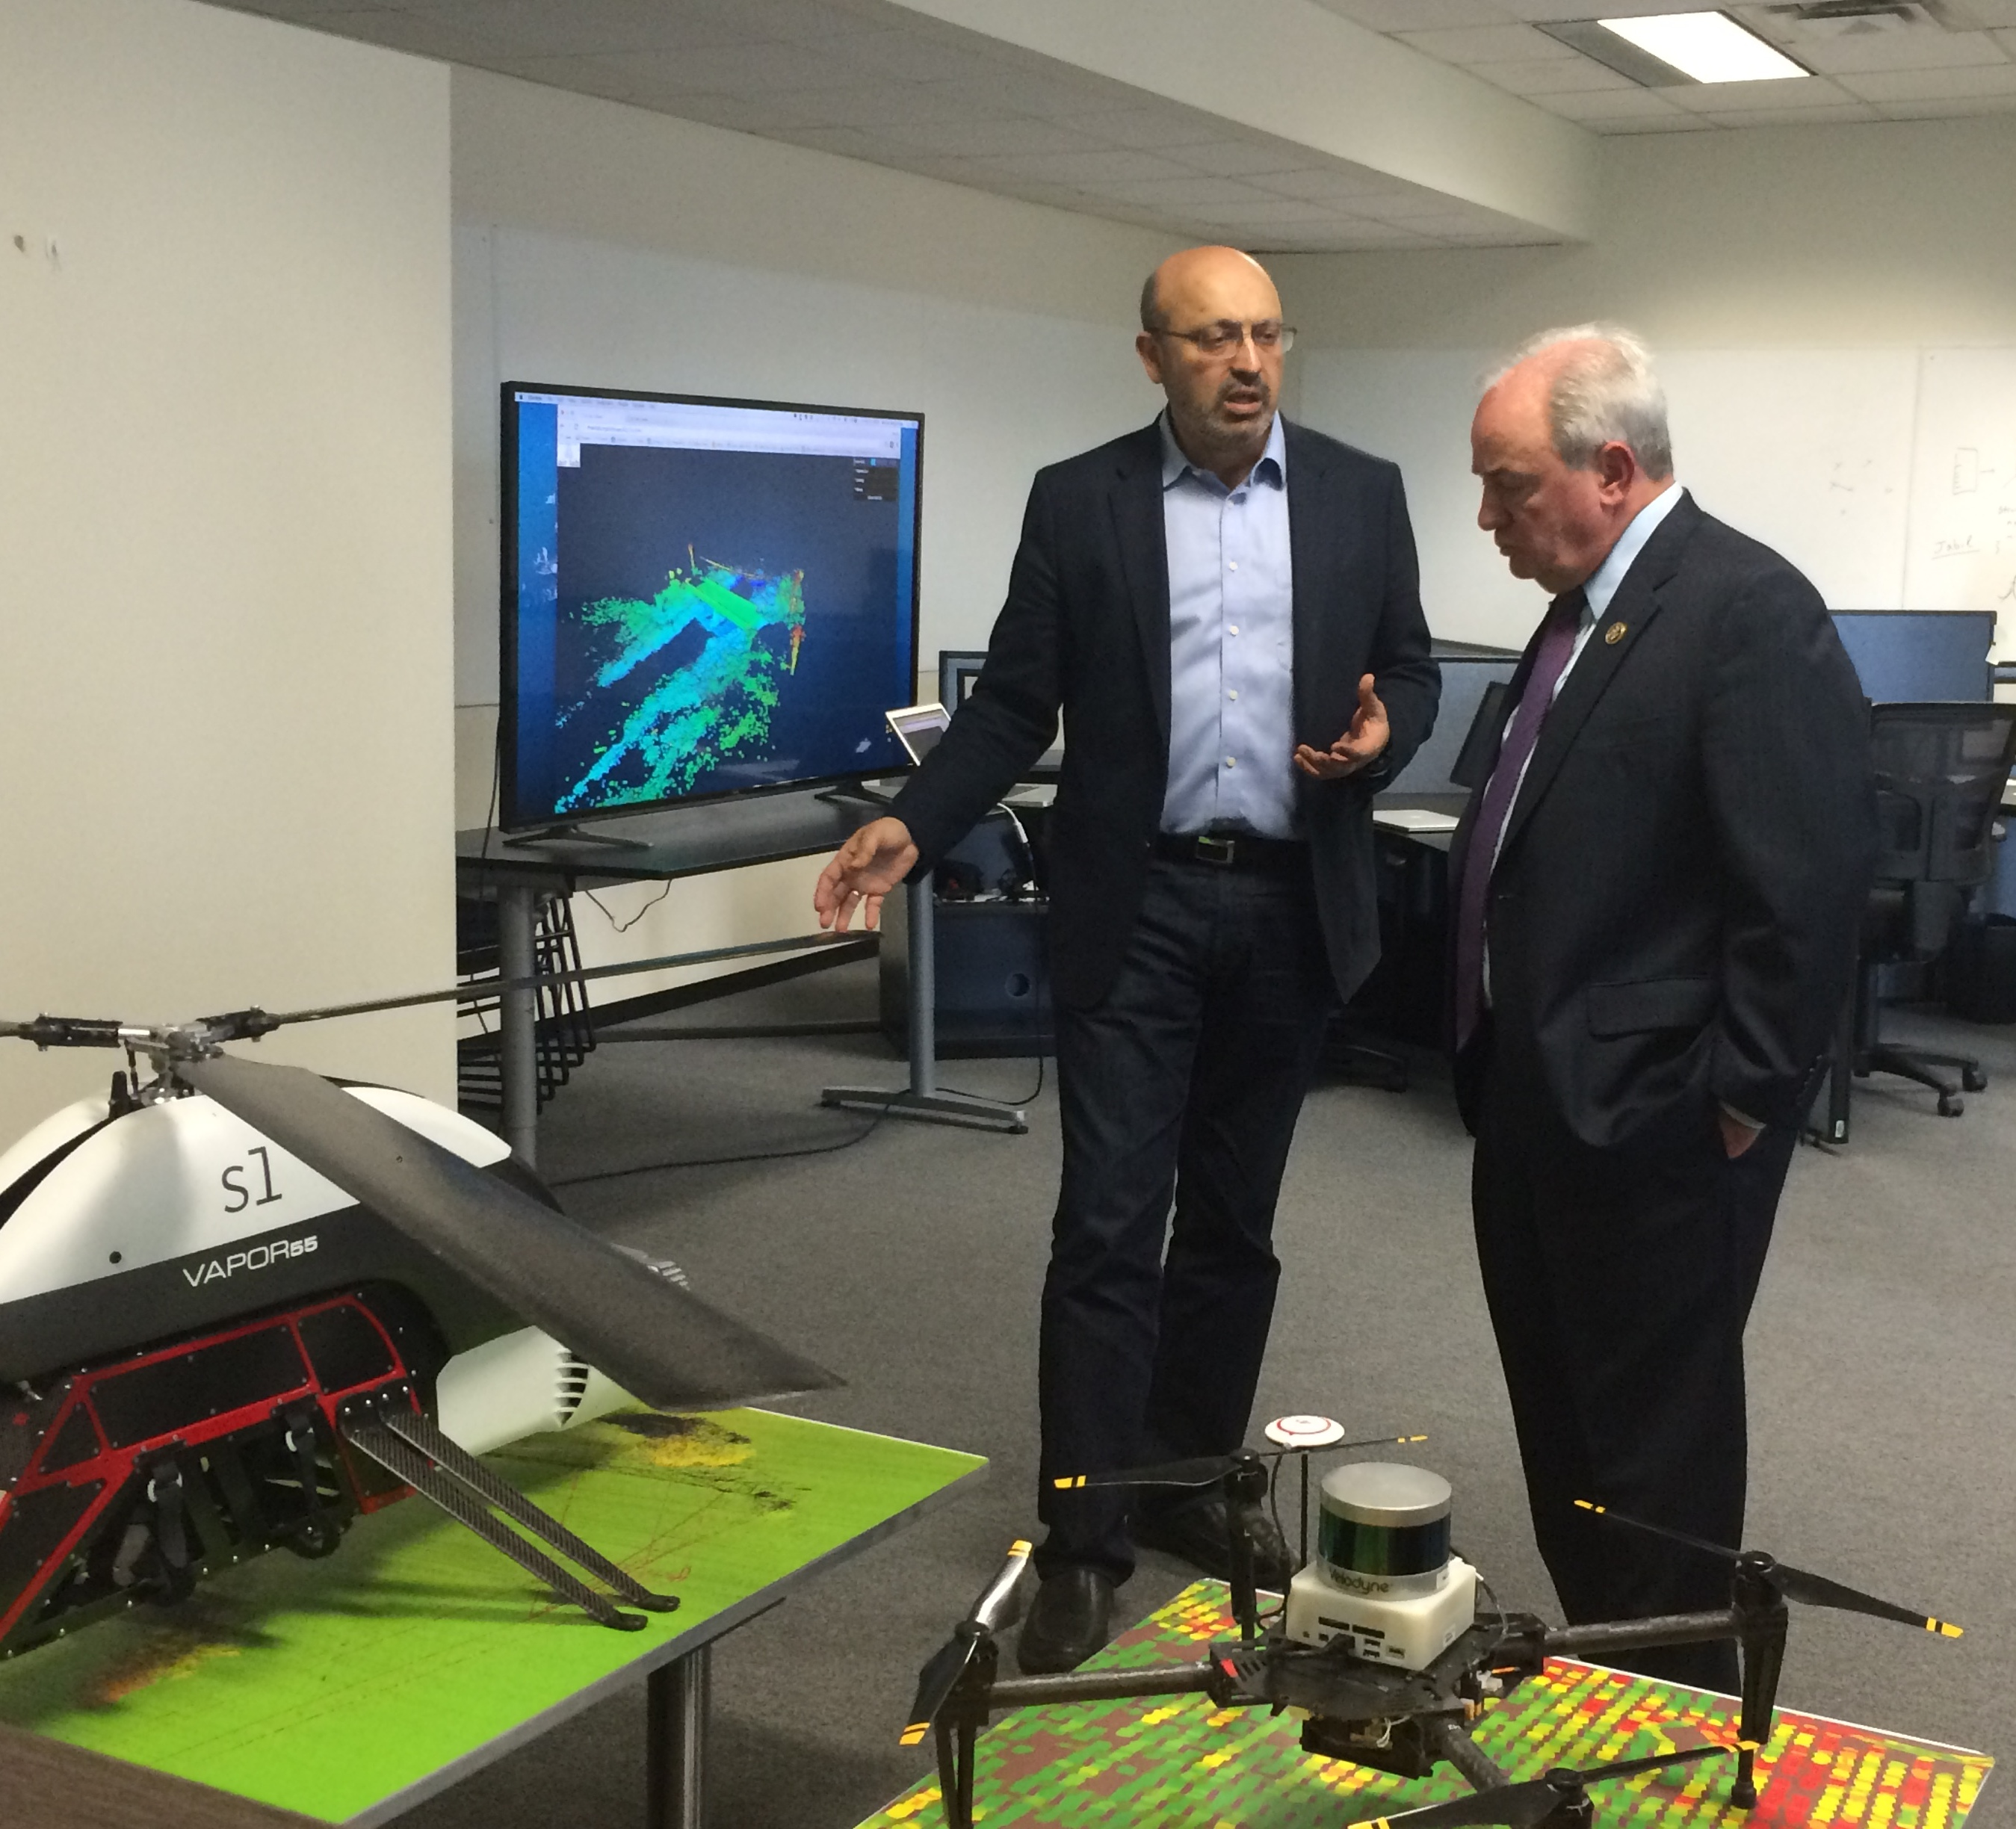 Dr. Sanjiv Singh explains Near Earth Autonomy's aerial robotic technology to U.S. Congressman Doyle